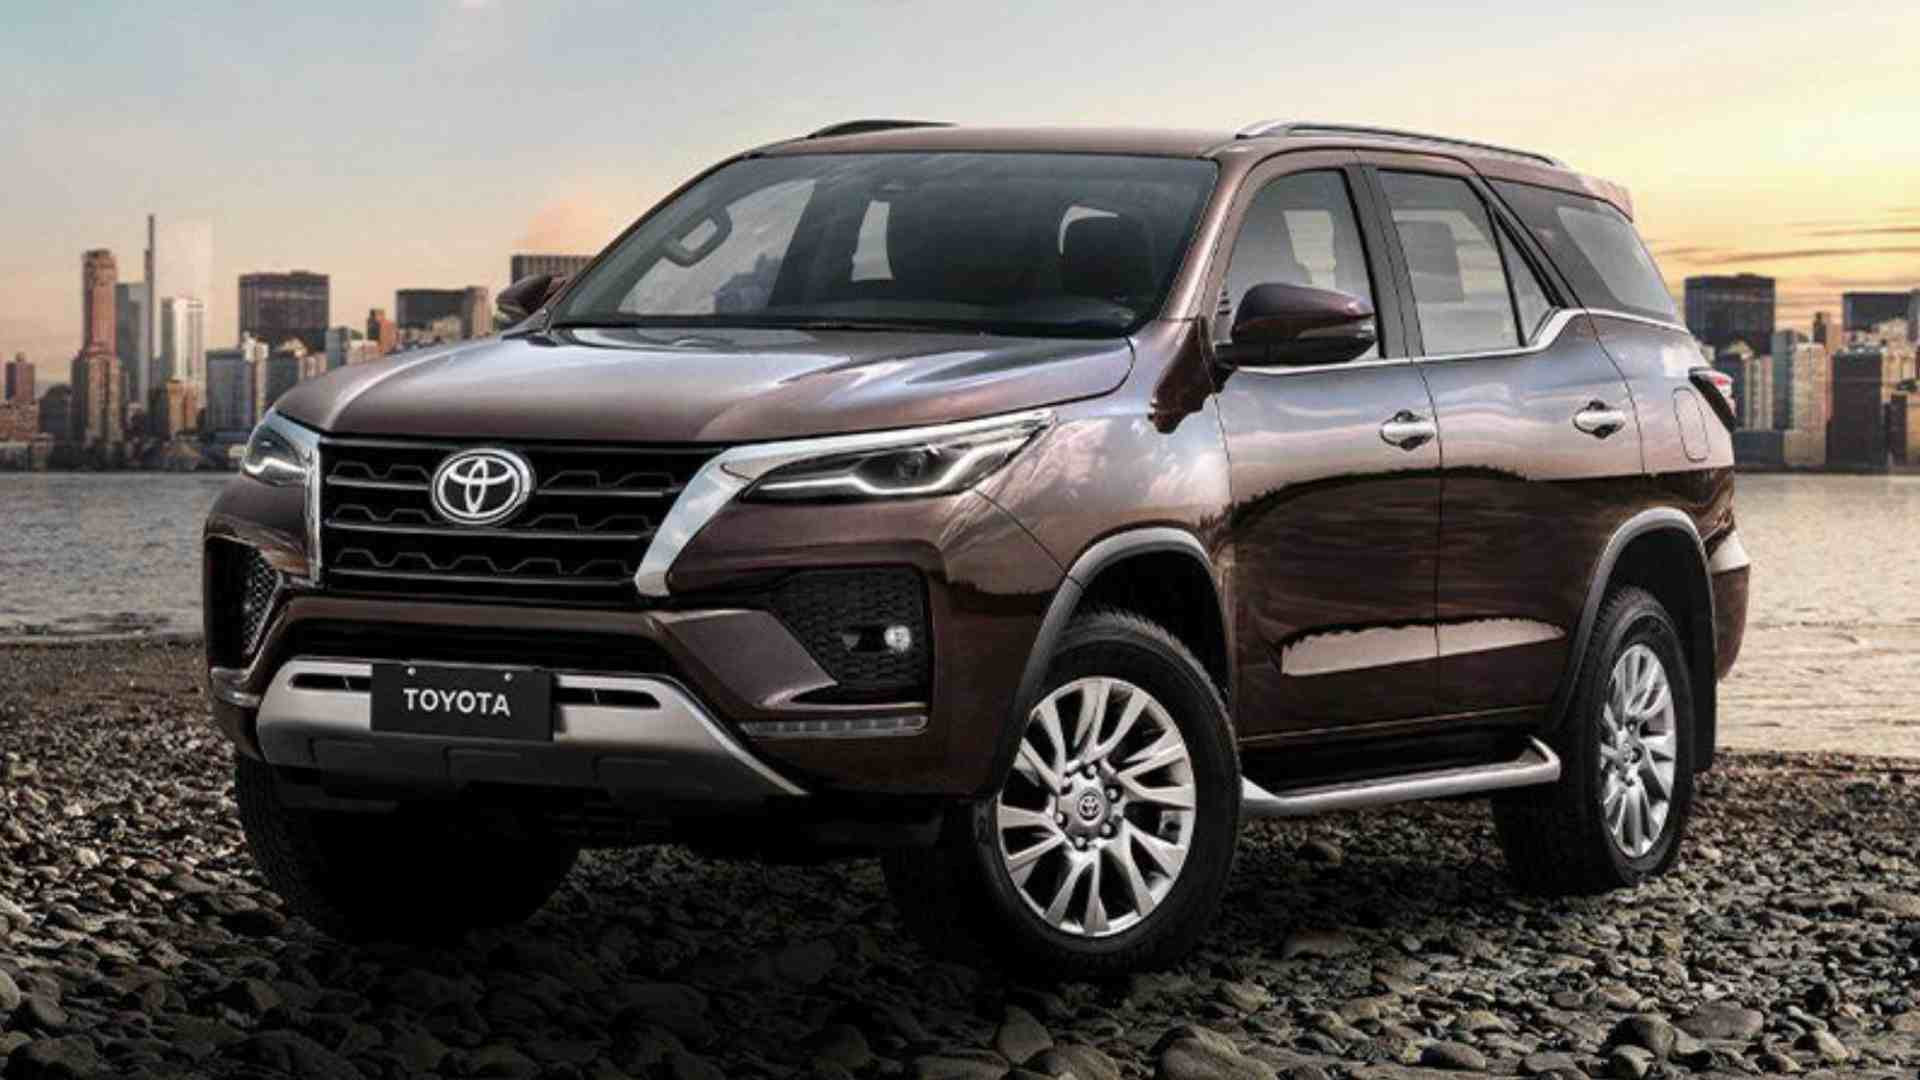 The Toyota Fortuner is set to get pricier still with the latest hike. Image: Toyota